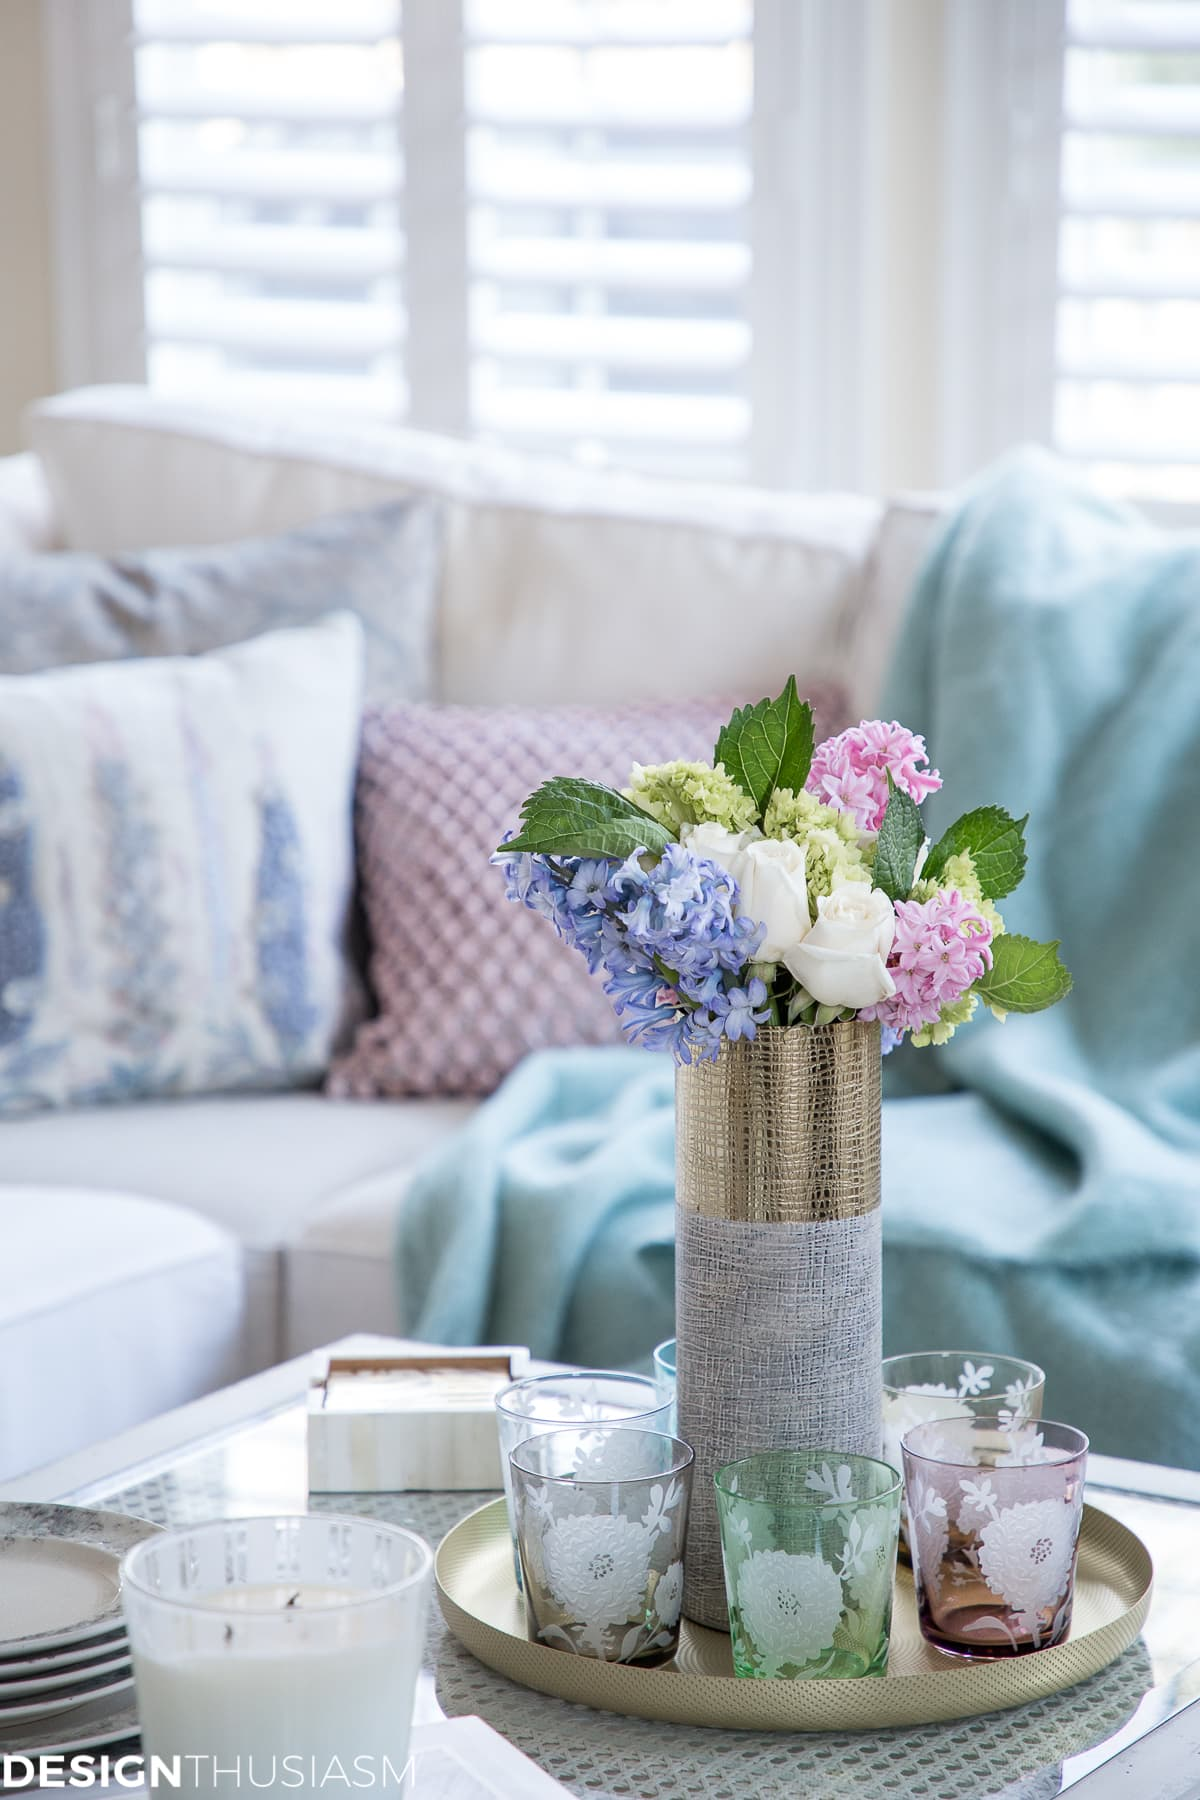 Spring Decor How To Use Accessories To Add Color To A Neutral Home